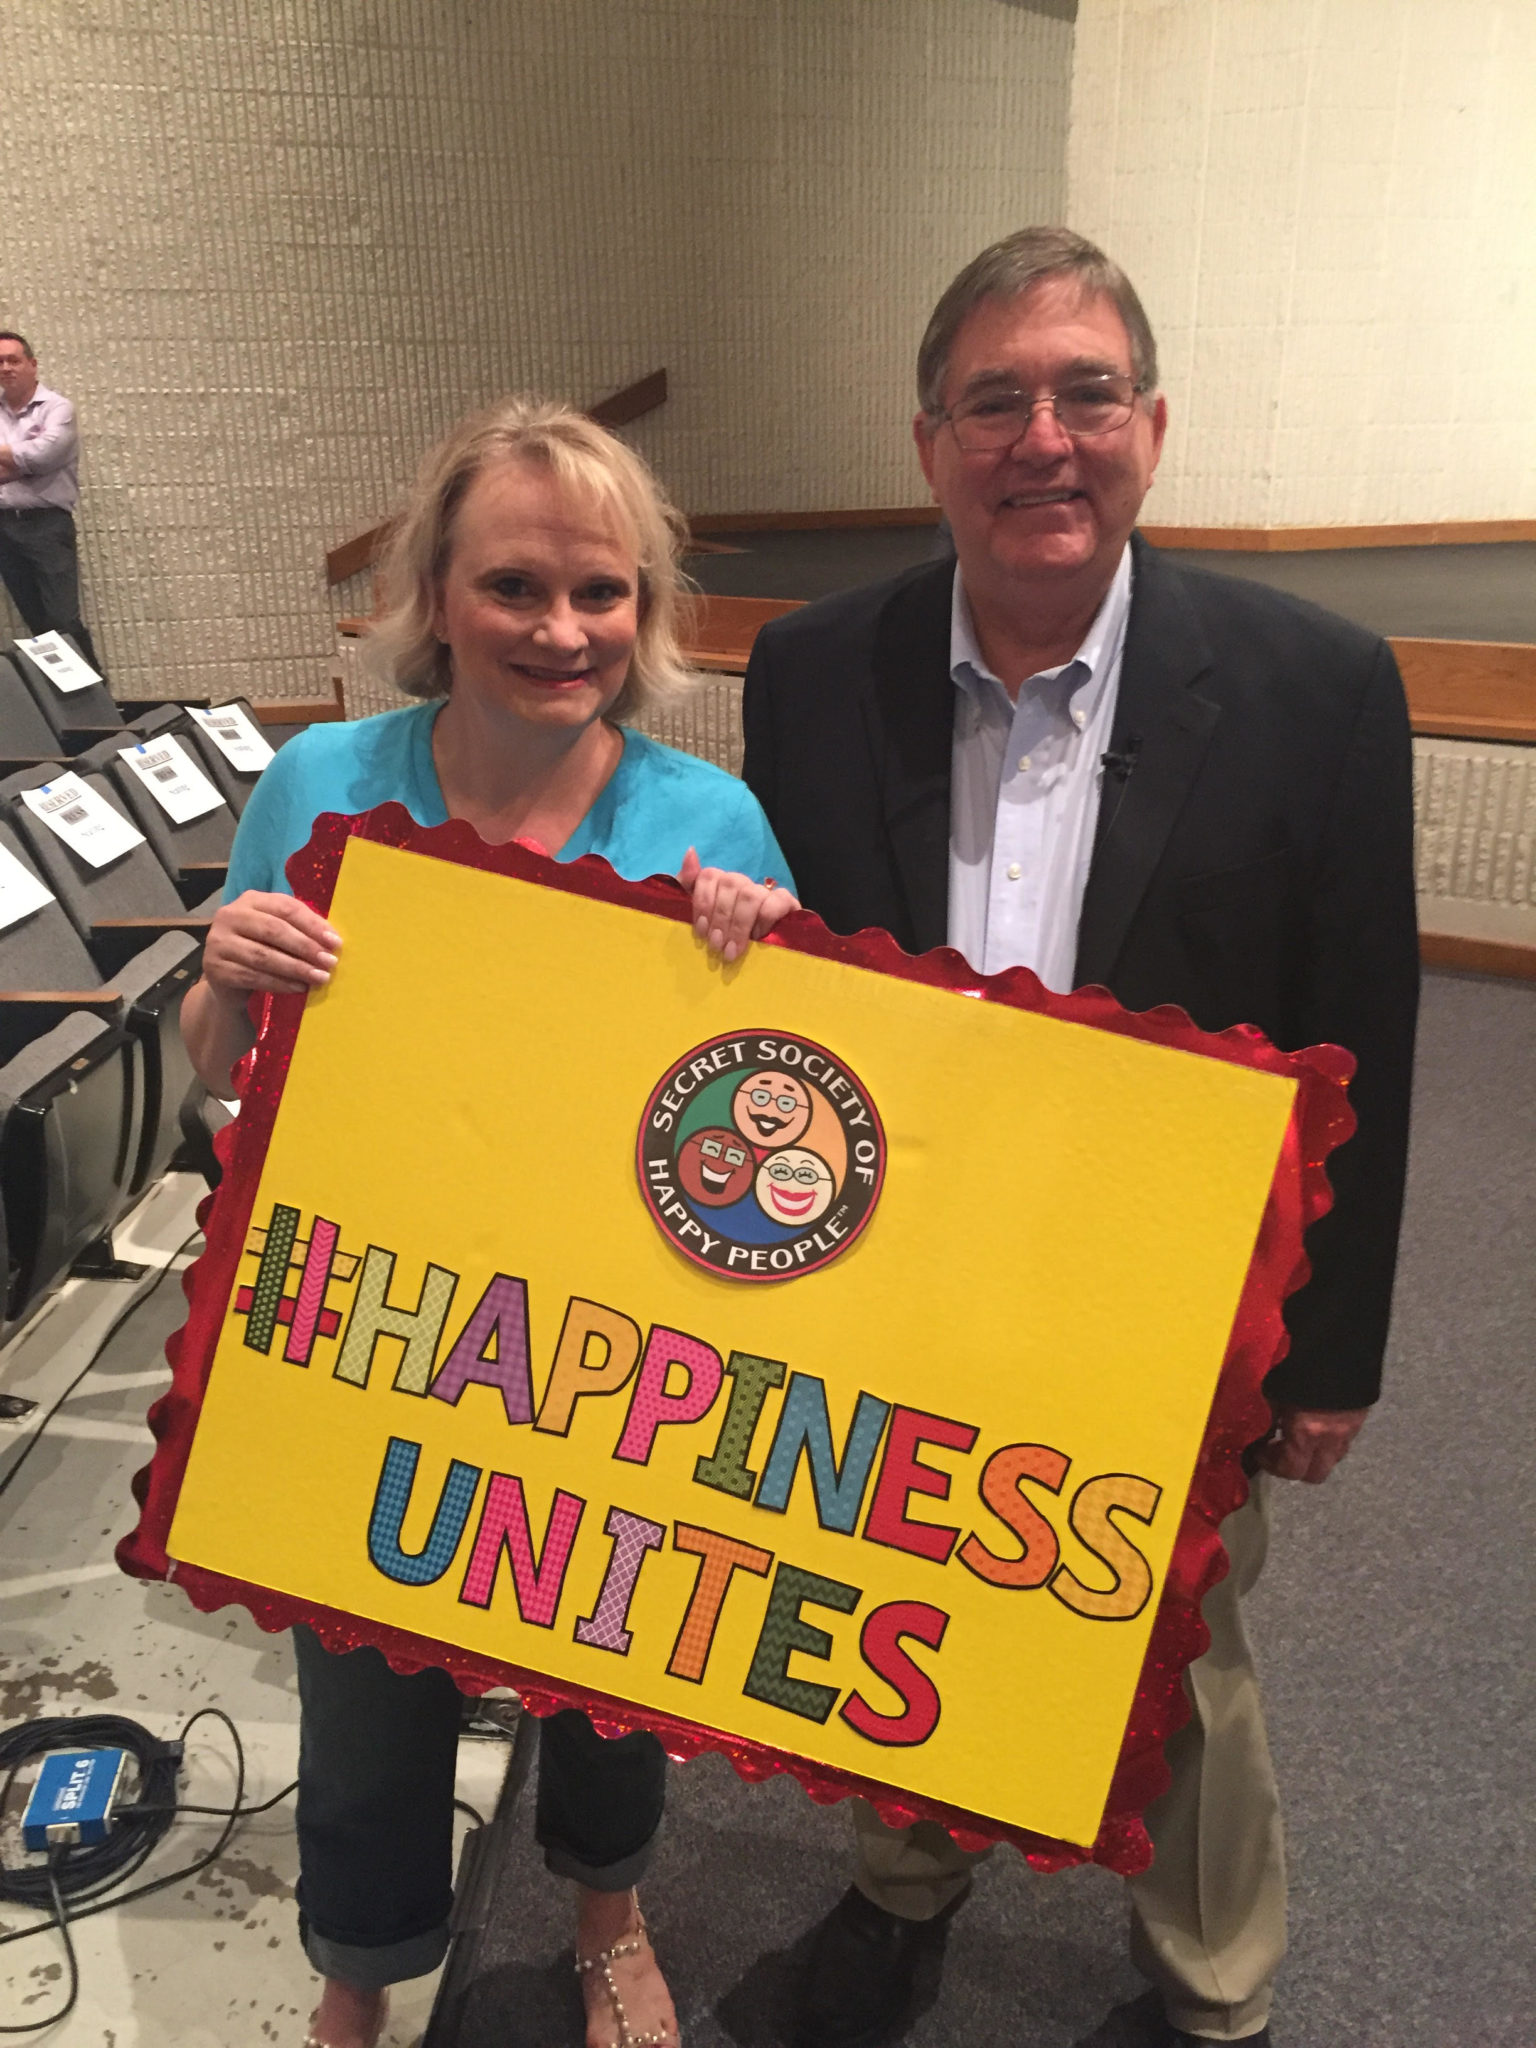 #HappinessUnites Tour Patriotism, Pamela Gail Johnson, Congressman Burgesss